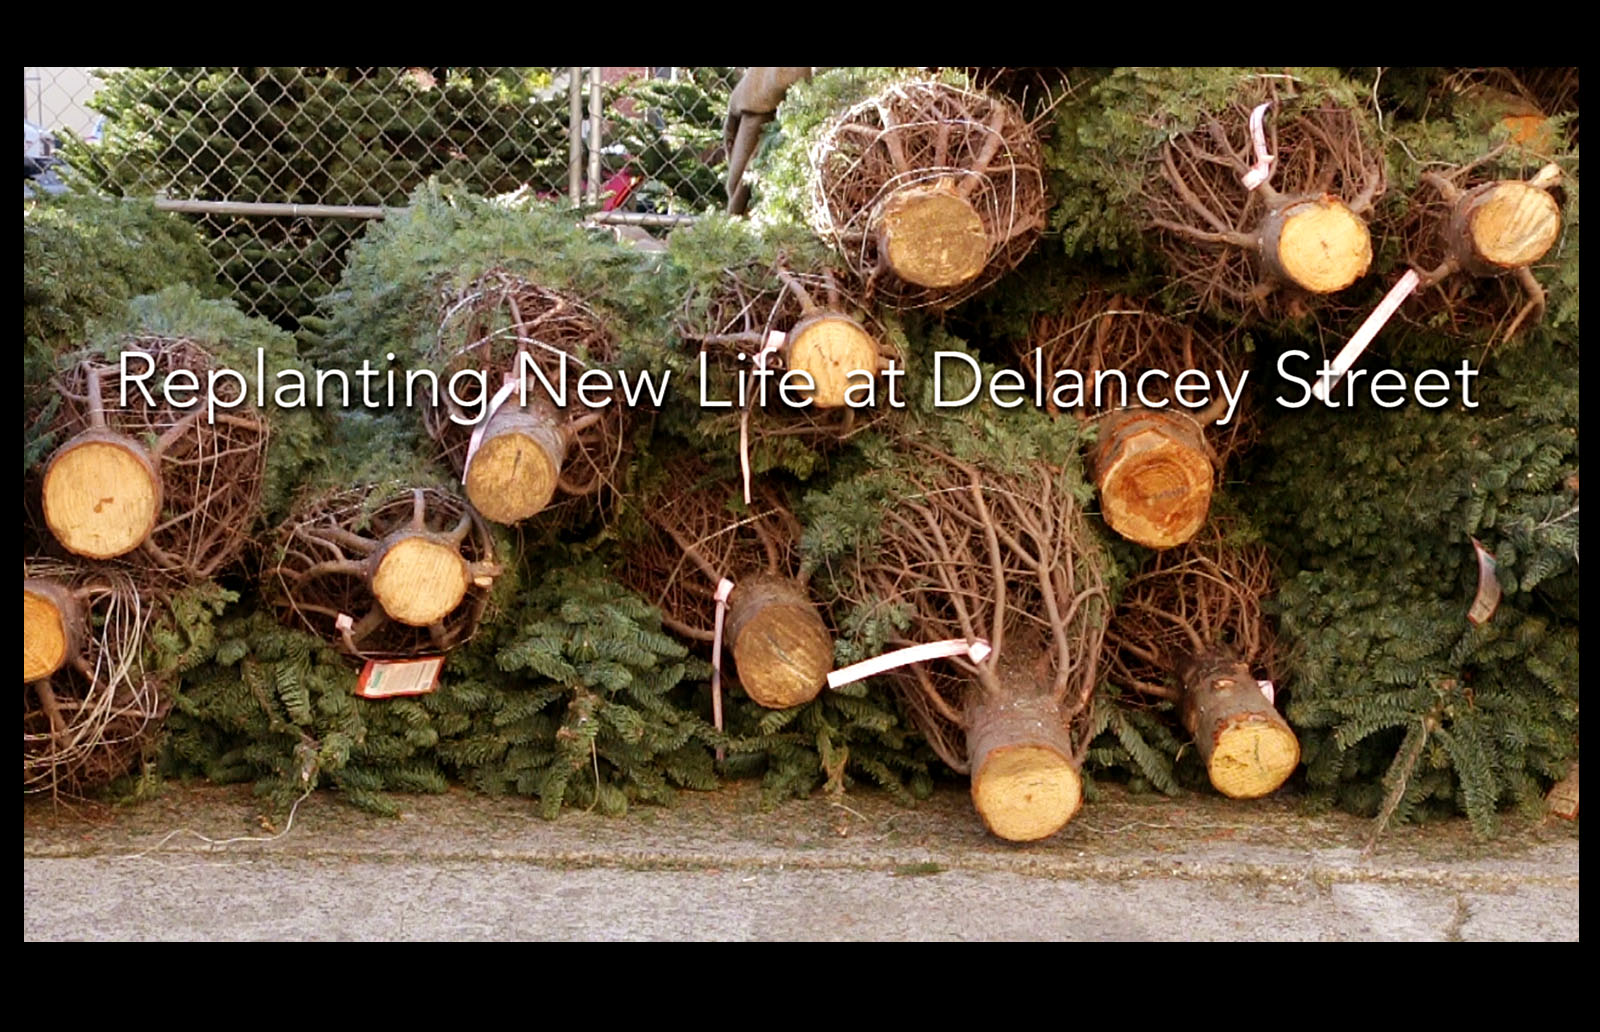 VIDEO: Replanting new life at Delancey Street